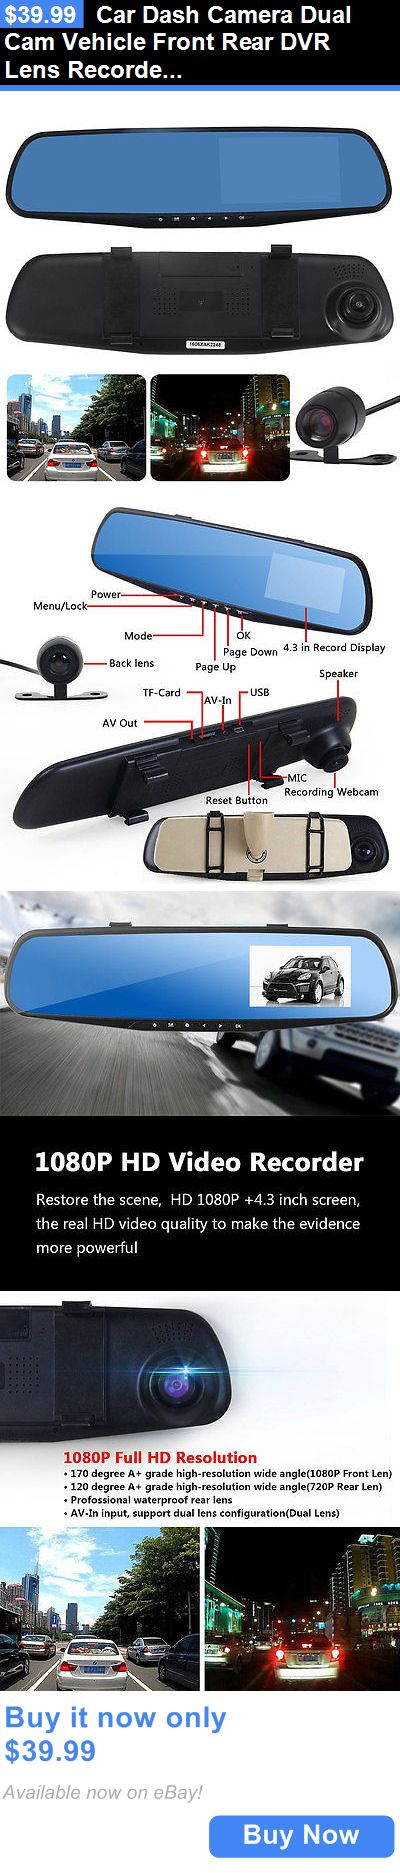 Digital Video Recorders Cards: Car Dash Camera Dual Cam Vehicle Front Rear Dvr Lens Recorder Hd Video 1080P BUY IT NOW ONLY: $39.99